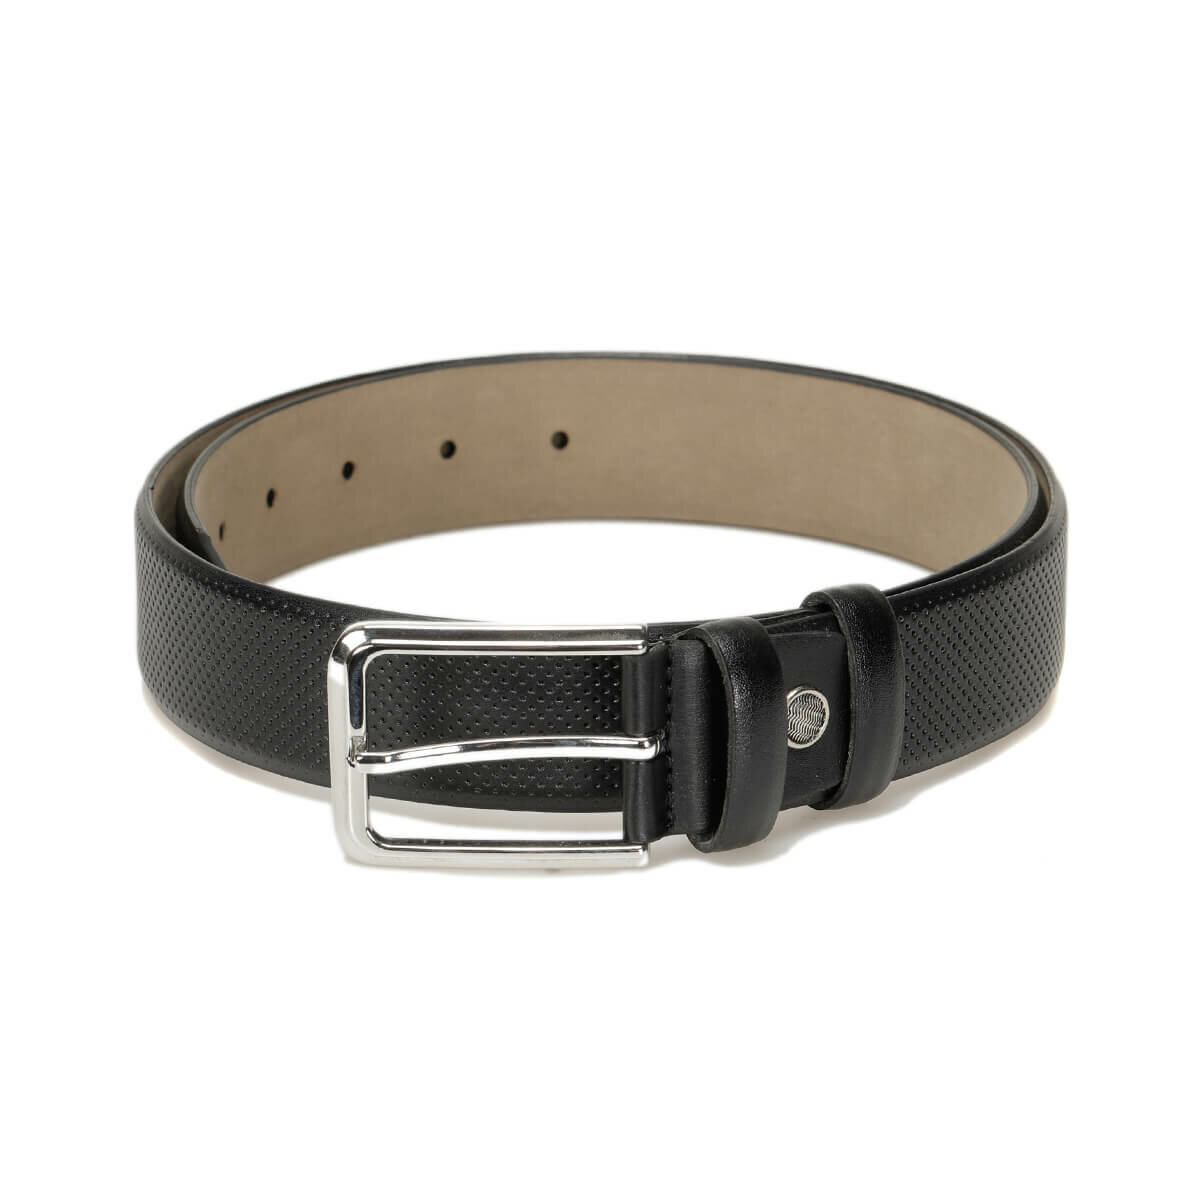 FLO MVZYN3401 Black Male Belt Garamond